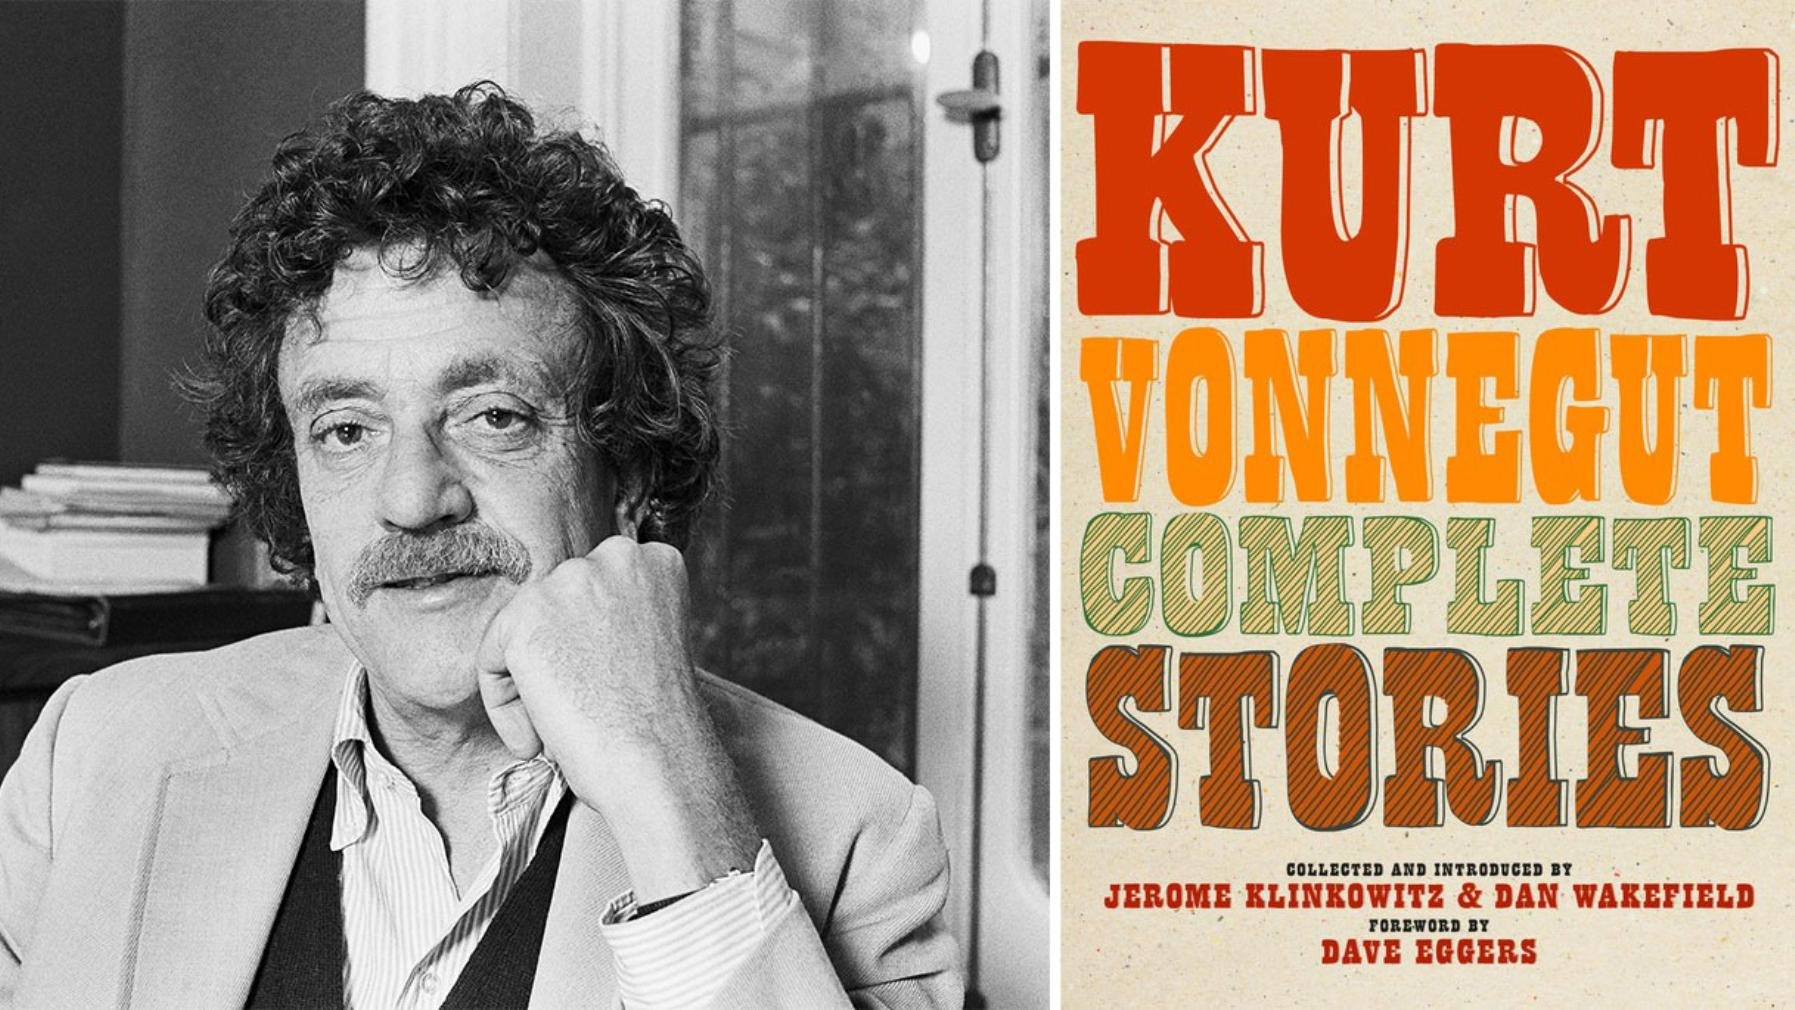 Five previously unreleased Kurt Vonnegut stories will be published this month: https://t.co/0ZepQoQf8h https://t.co/uNipyHiG4h